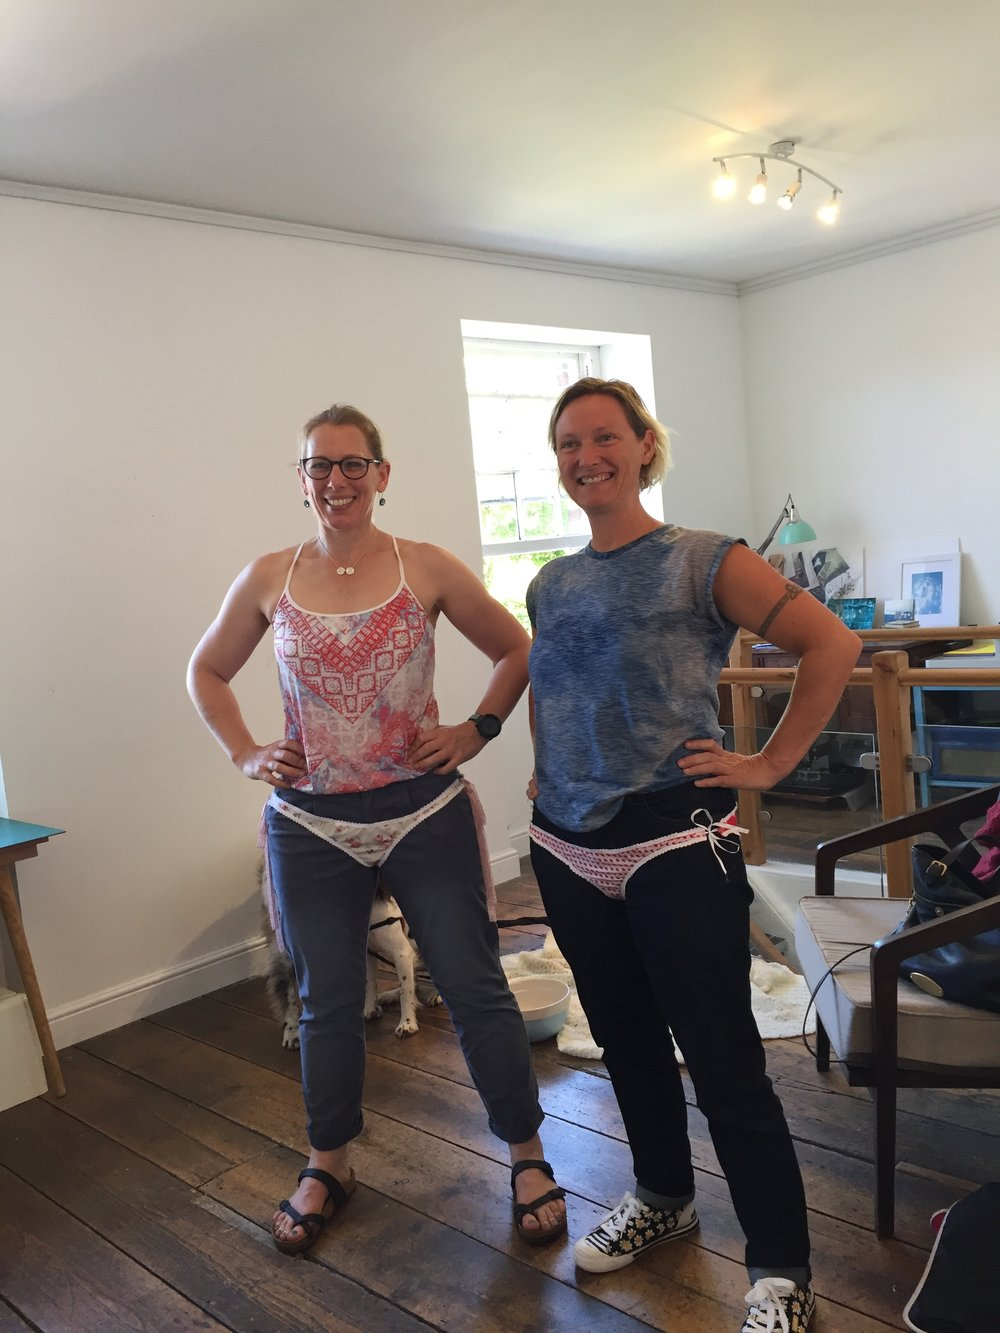 Making pants with ocean swimmer Beth French. Thanks to Bex Hughes for getting oceans and mountains in the same room!